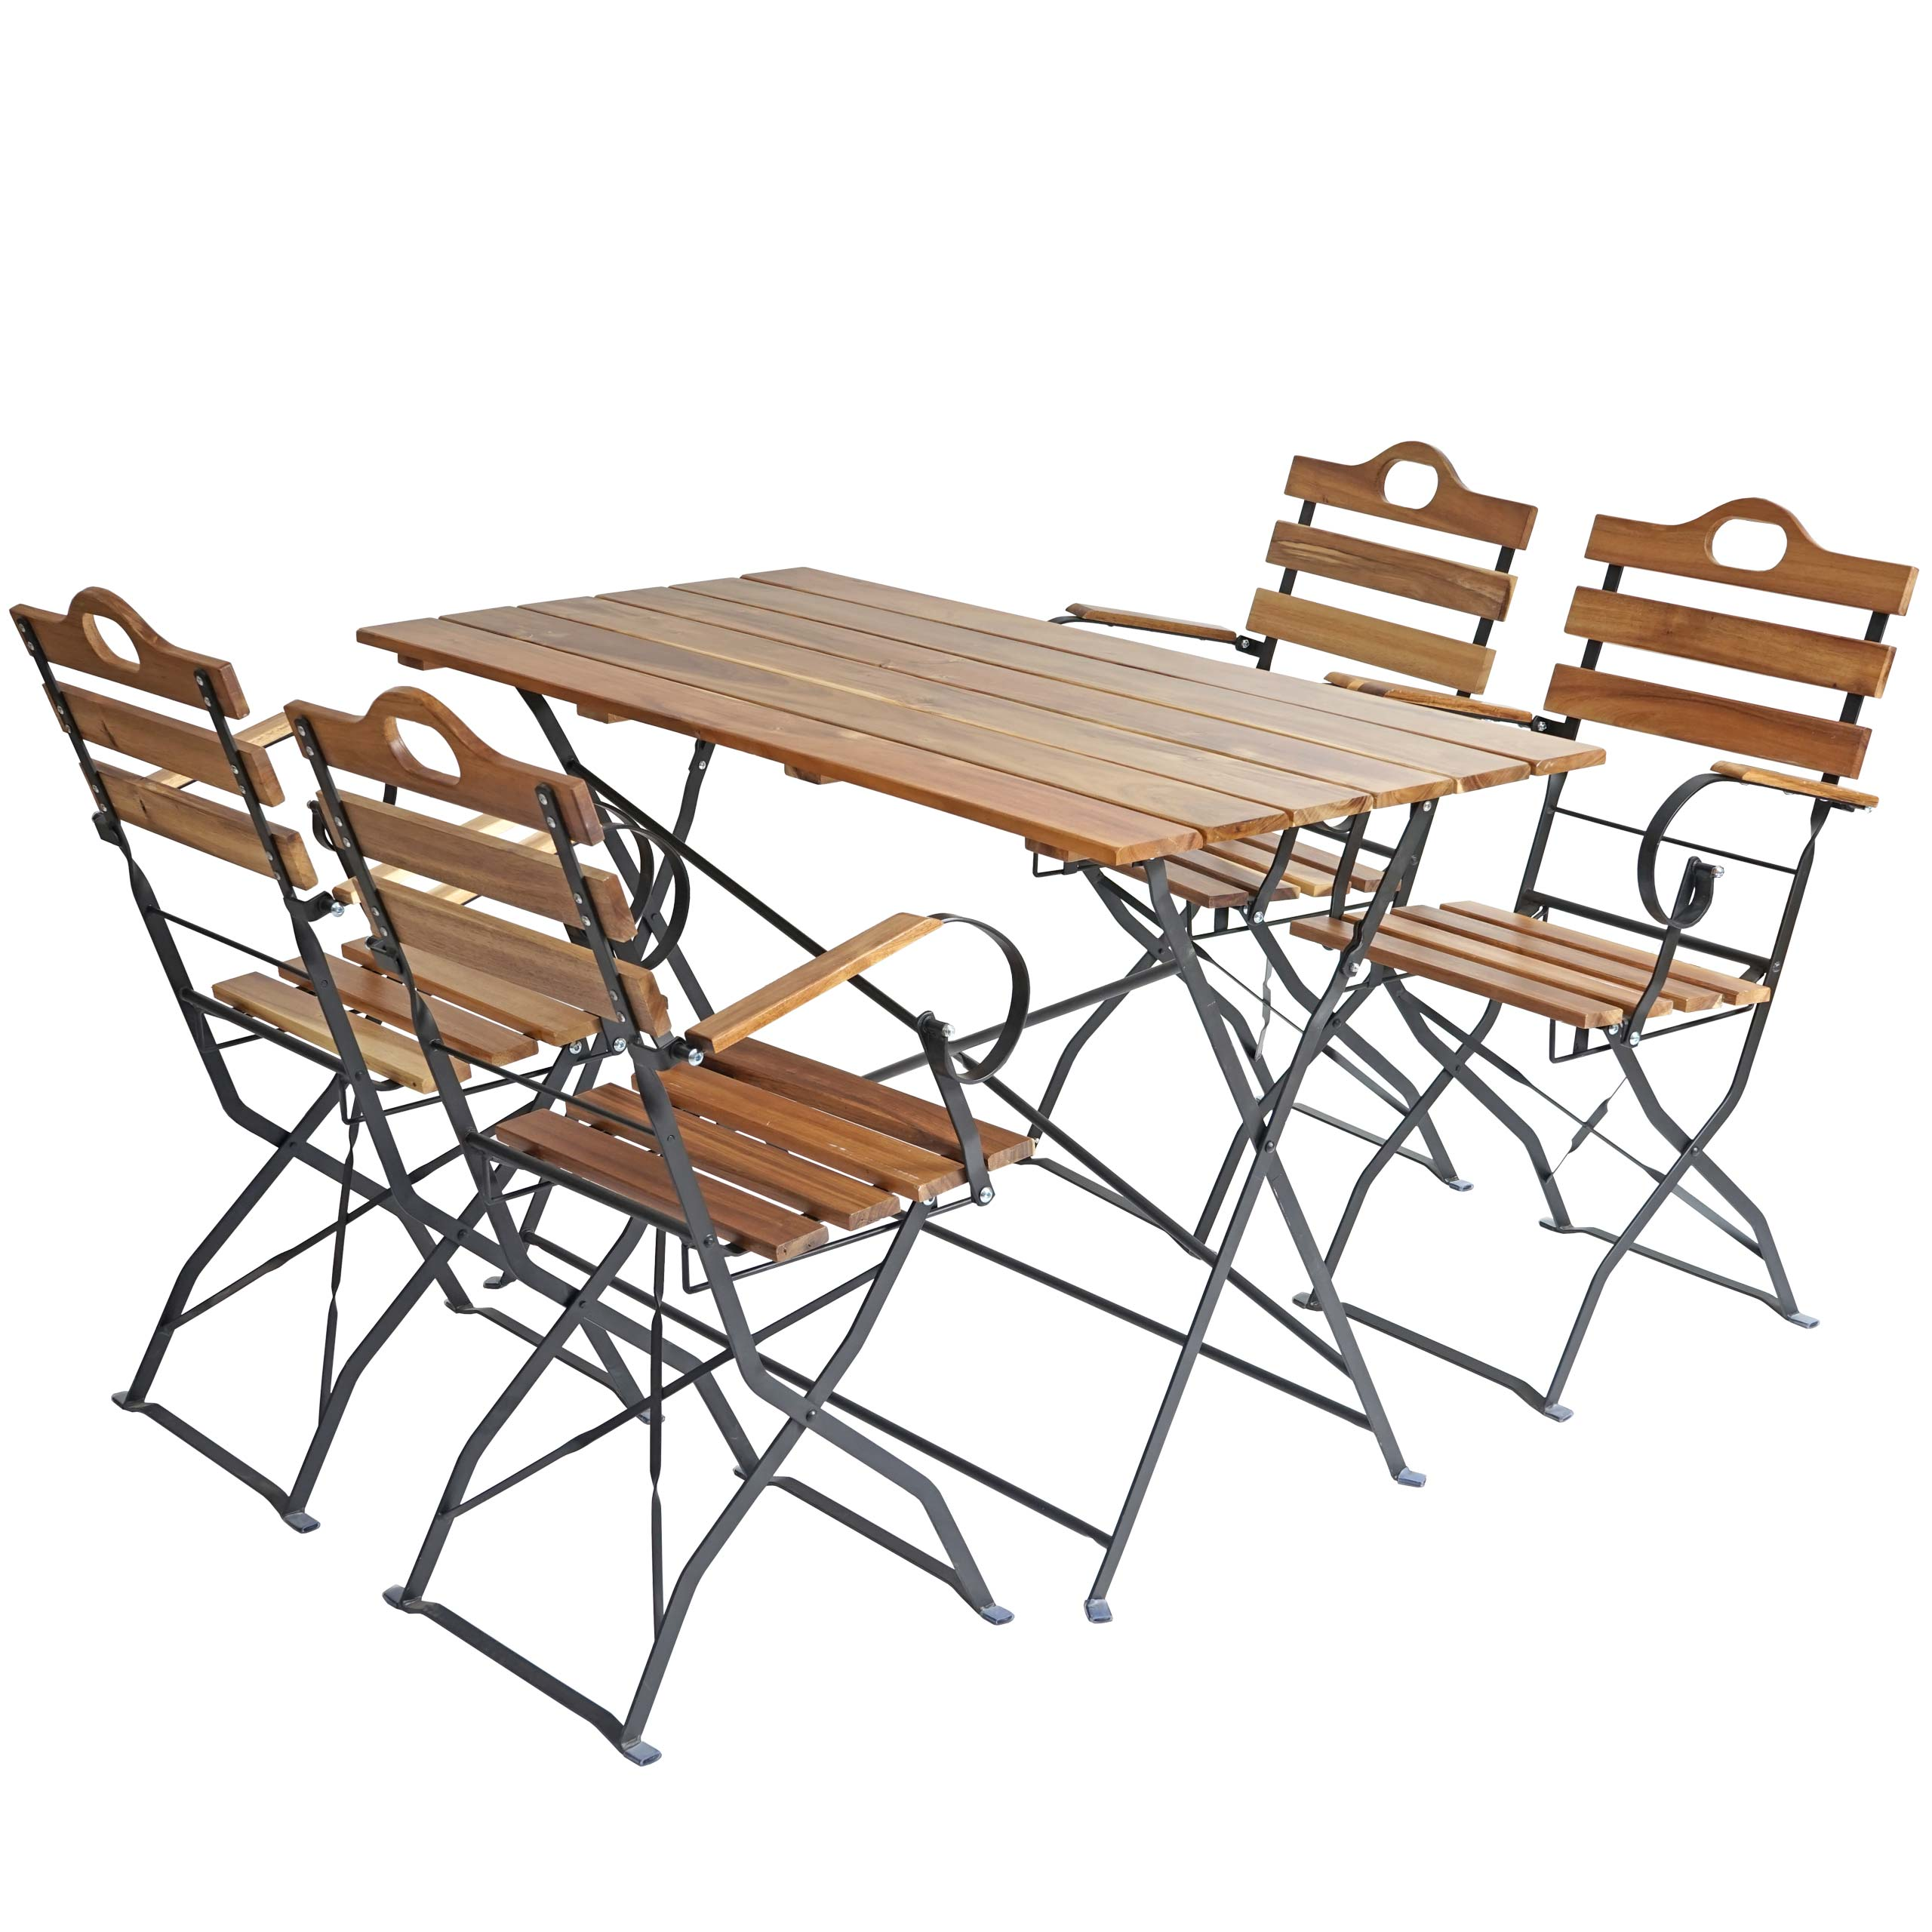 biergarten garnitur wien bistro set garten set klappbar. Black Bedroom Furniture Sets. Home Design Ideas